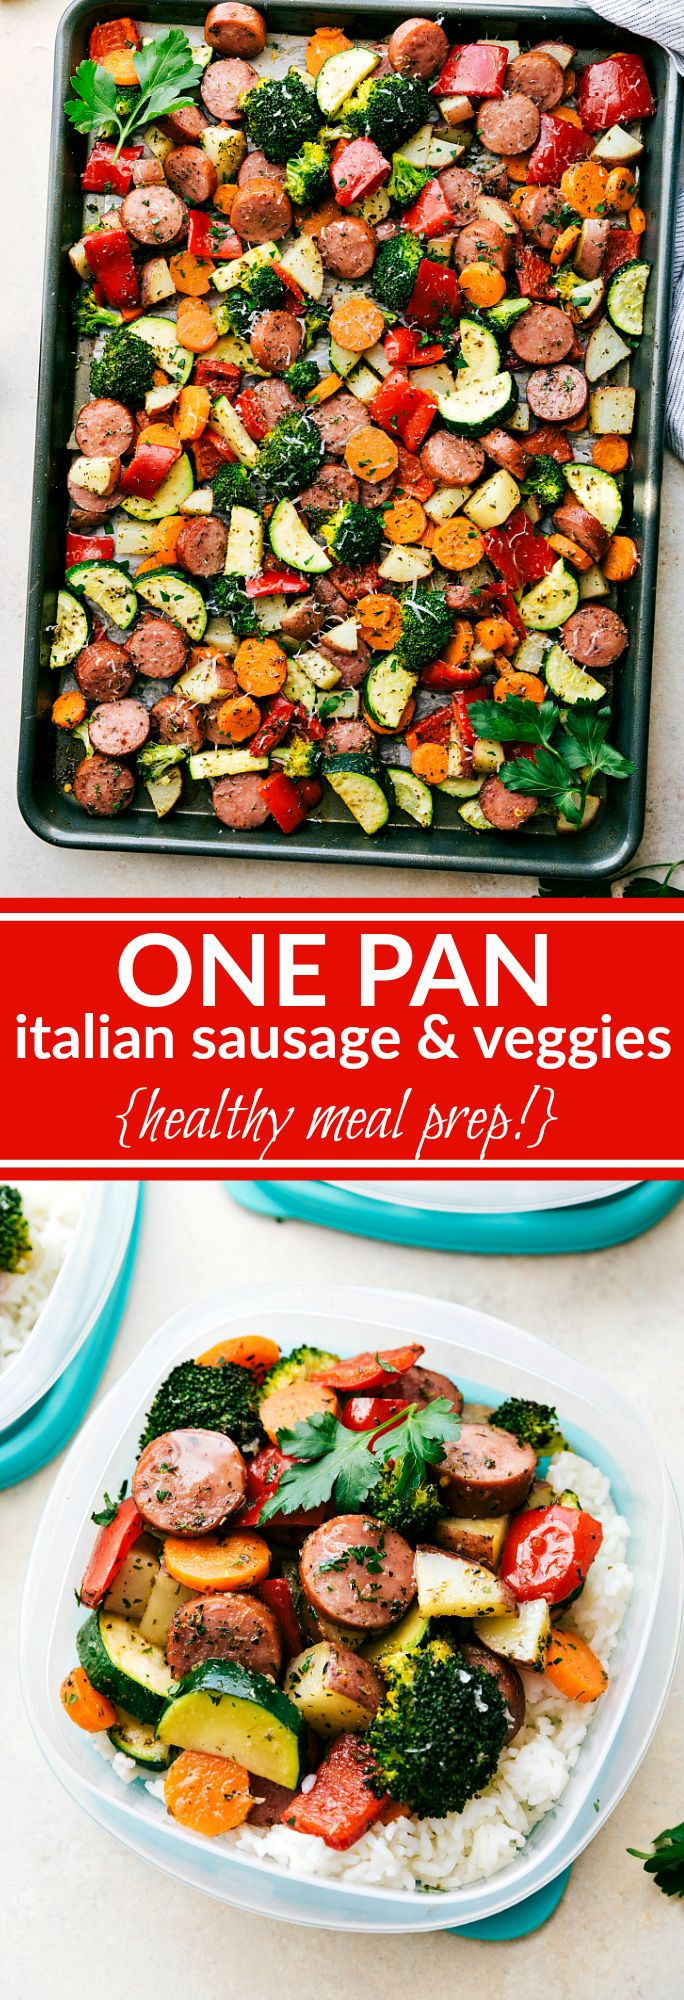 ONE PAN healthy Italian sausage & vegetables! Simple and delicious! Great food …